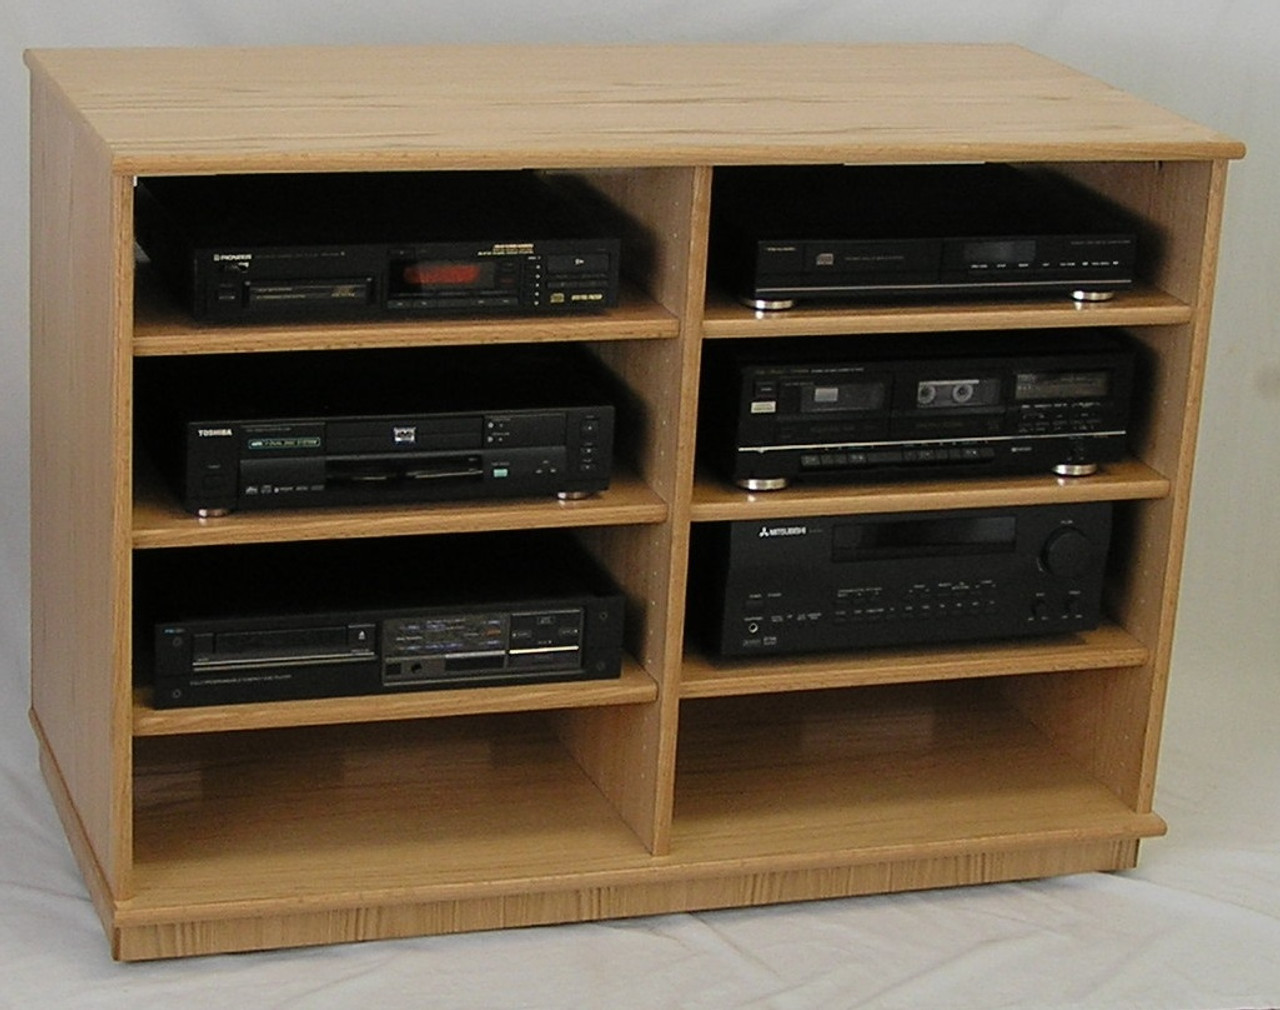 Wooden flat TV component stand 33 inches high